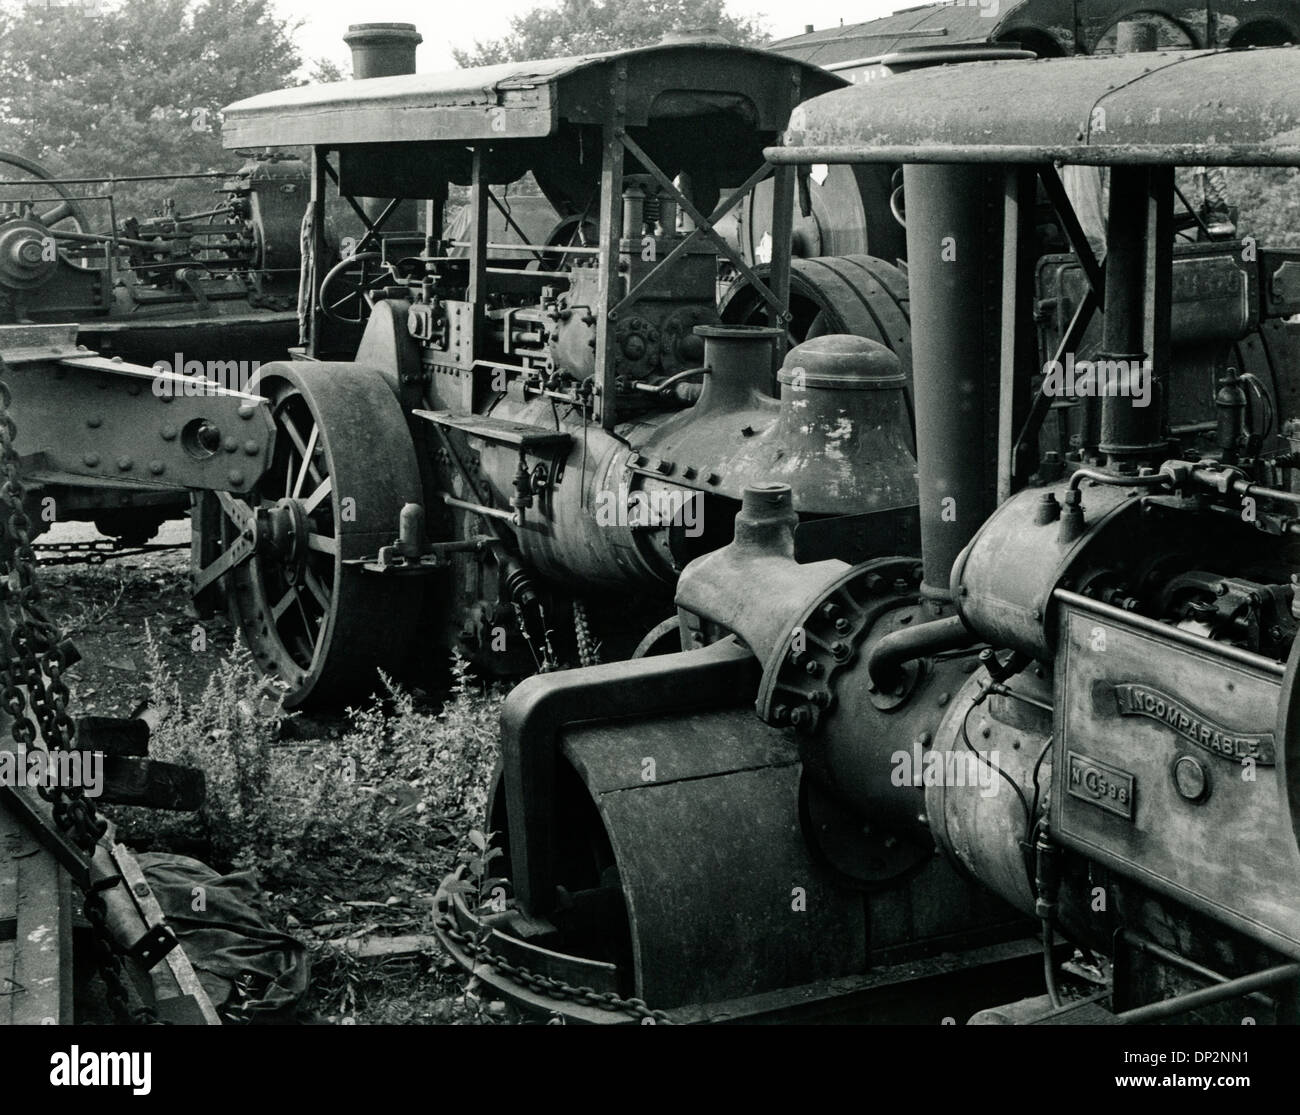 steam traction engines in a scrapyard rotting away - Stock Image